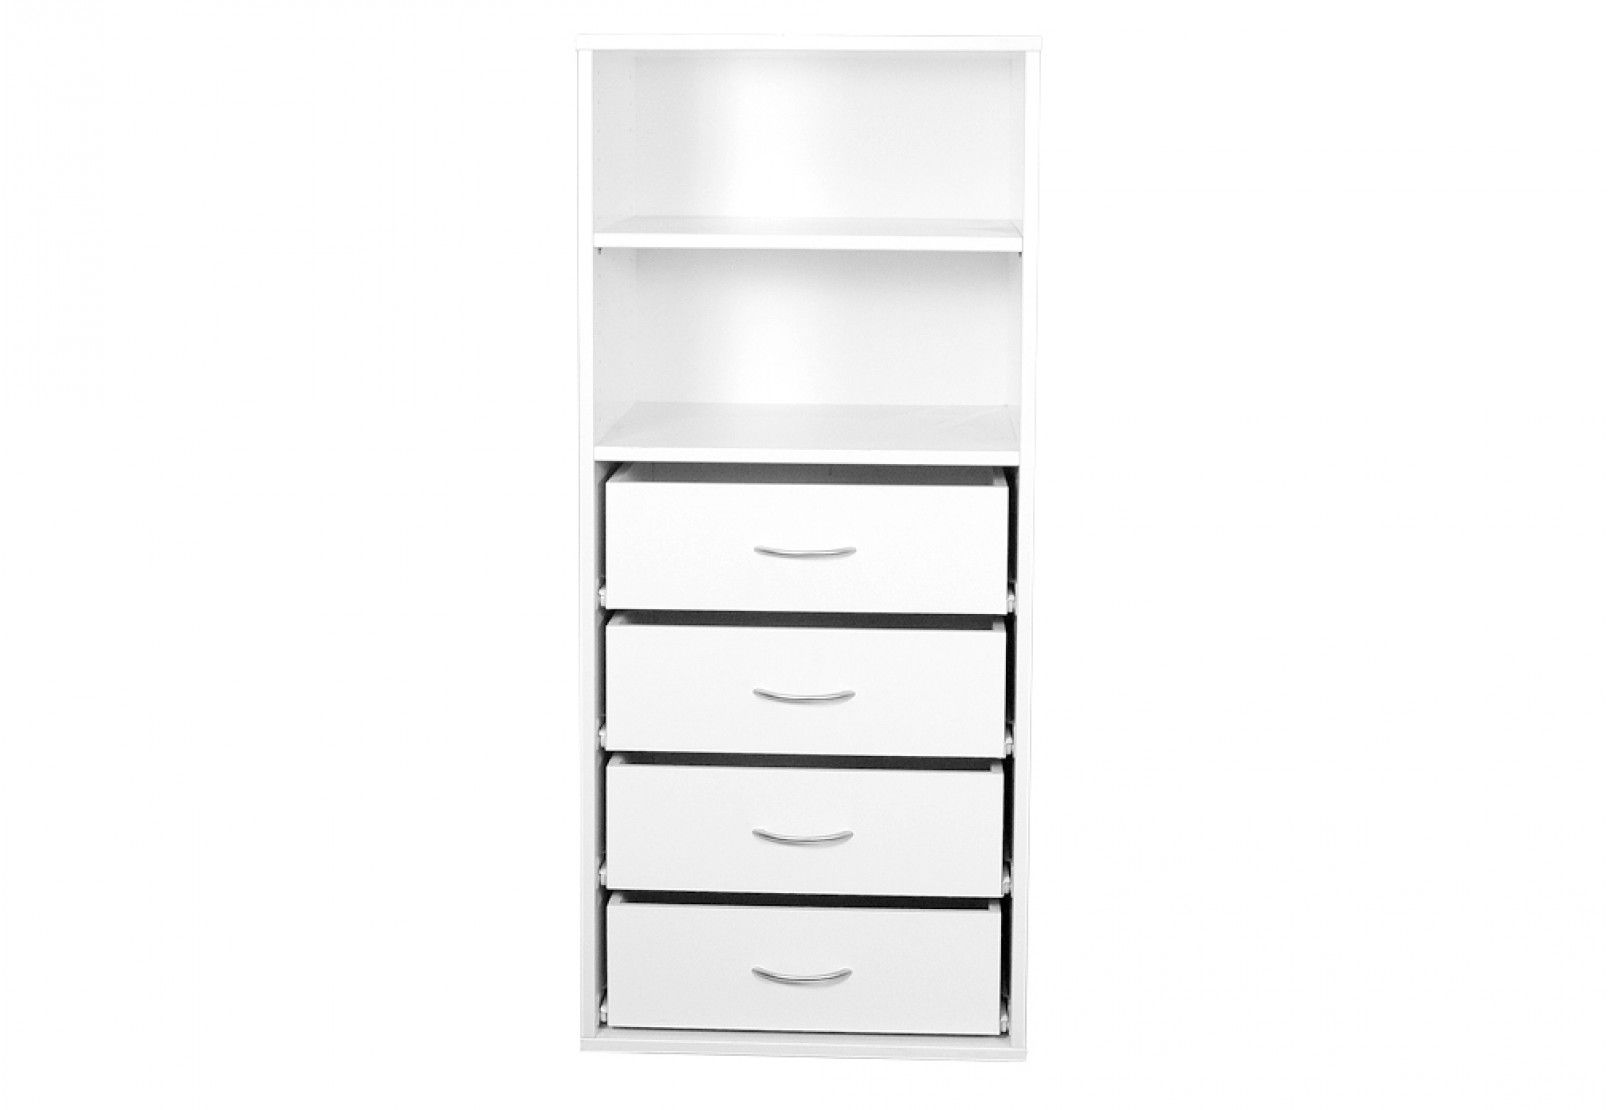 Spacesaver Drawer Unit Space Savers Living Room Furniture Tables